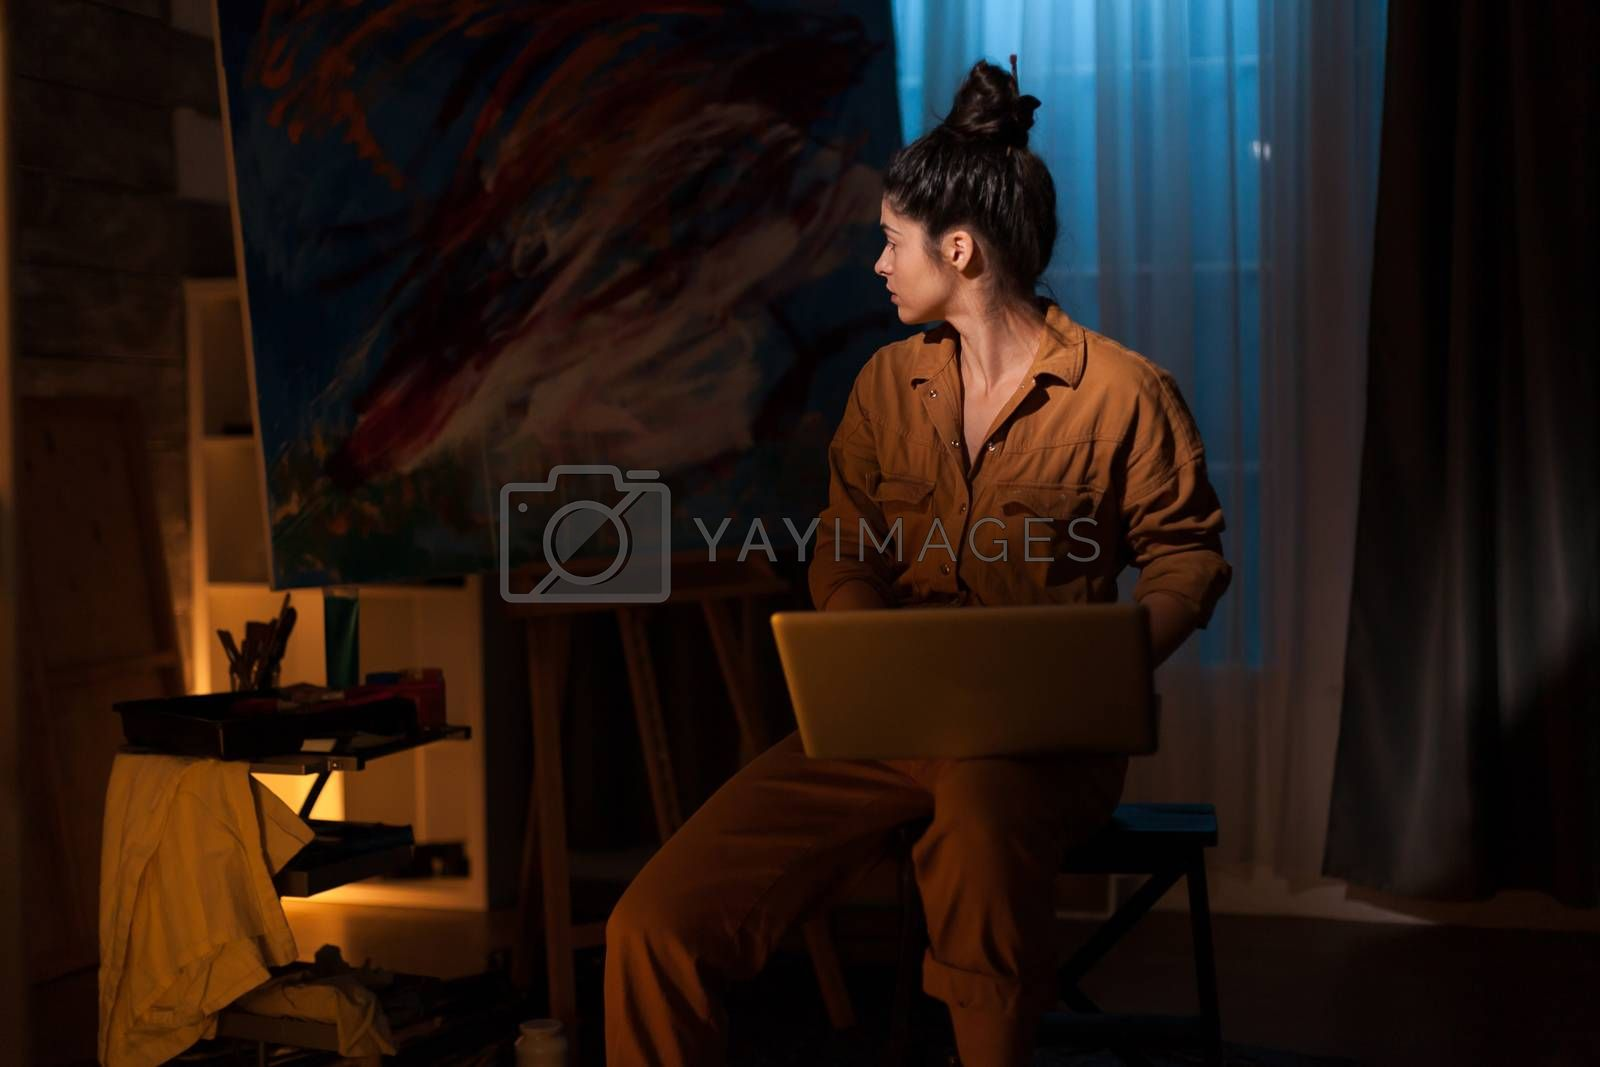 Young painter searching for inspiration on laptop in art studio. Modern artwork paint on canvas, creative, contemporary and successful fine art artist drawing masterpiece